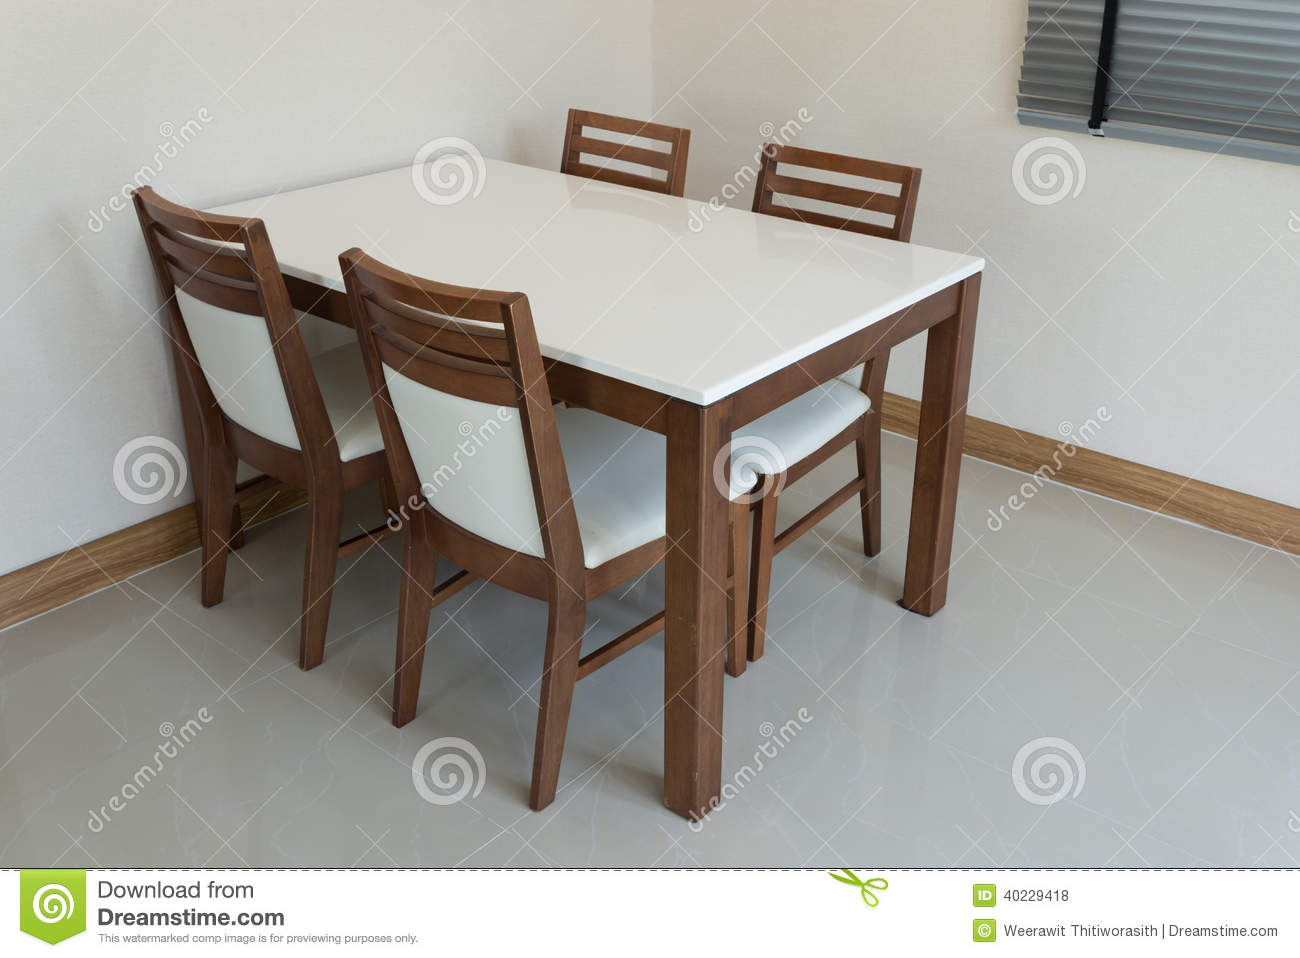 Table de salle manger en bois photo stock image 40229418 for Table a manger 2 personnes